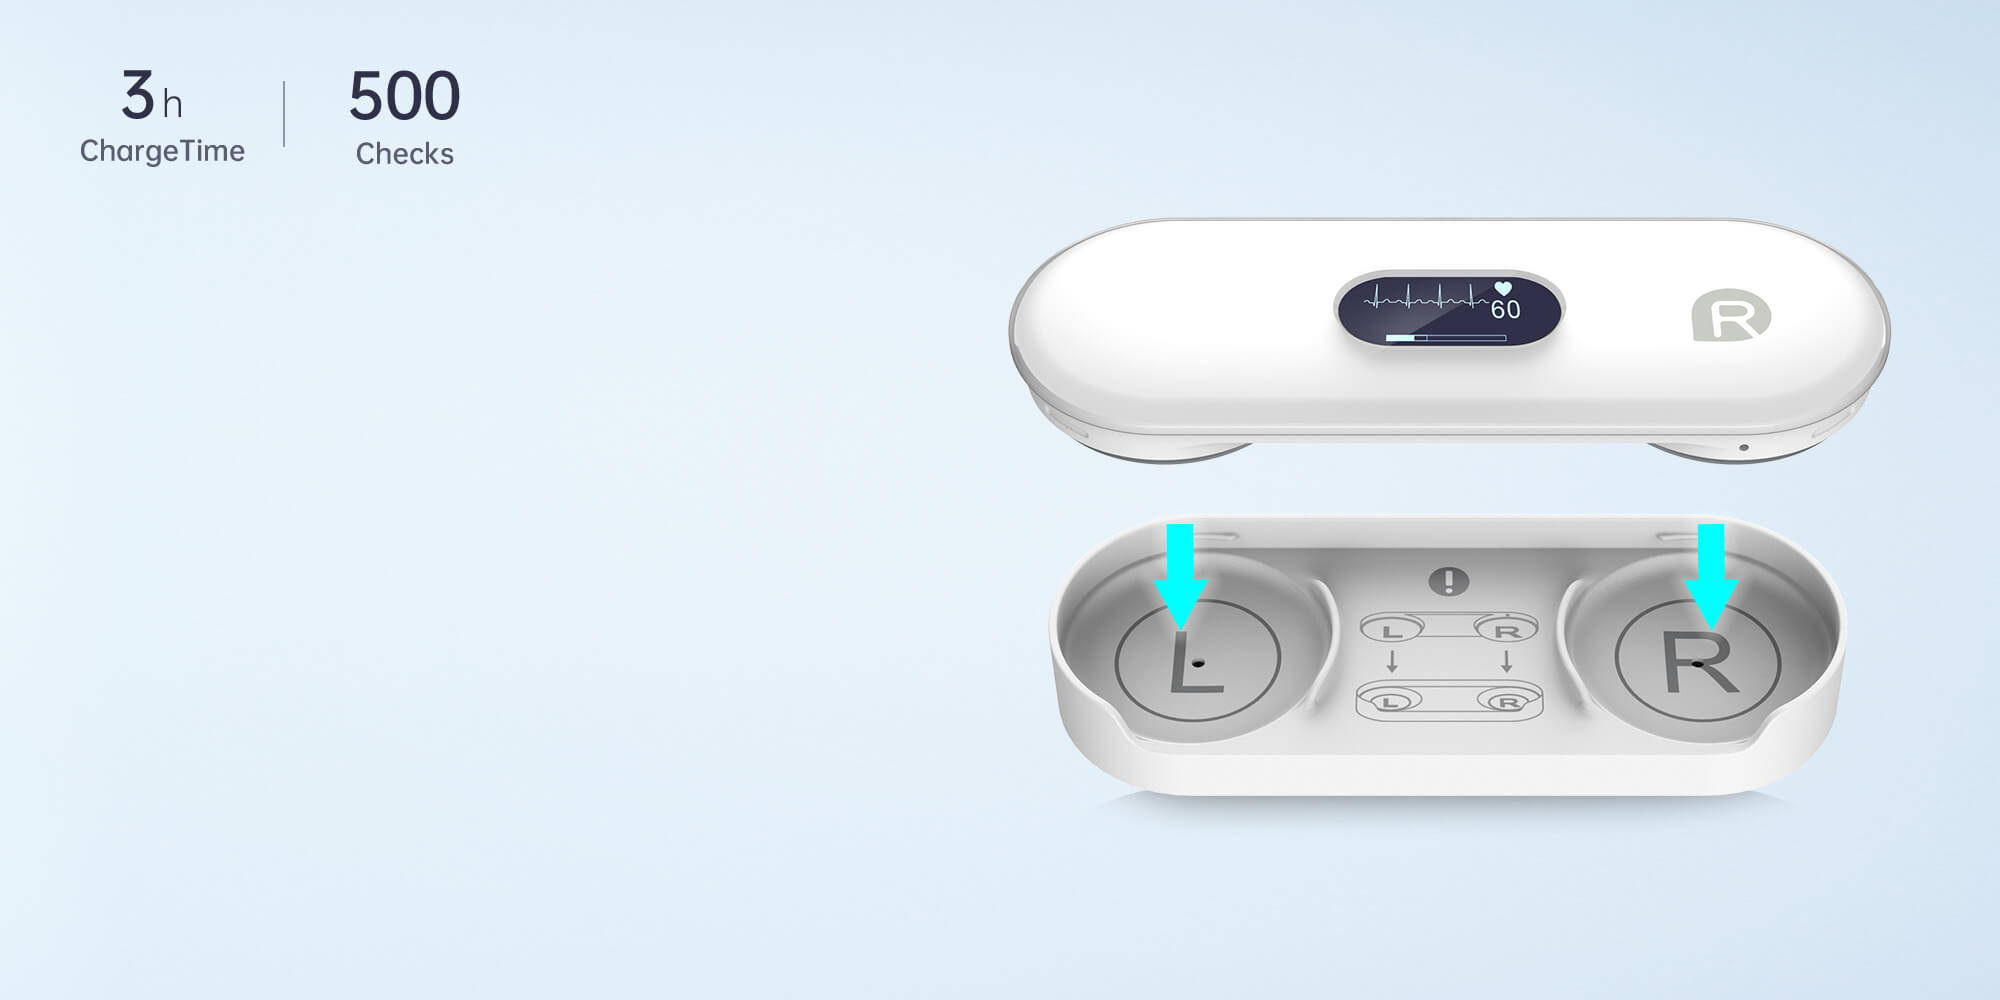 magnetic charging dock, built-in rechargeable battery